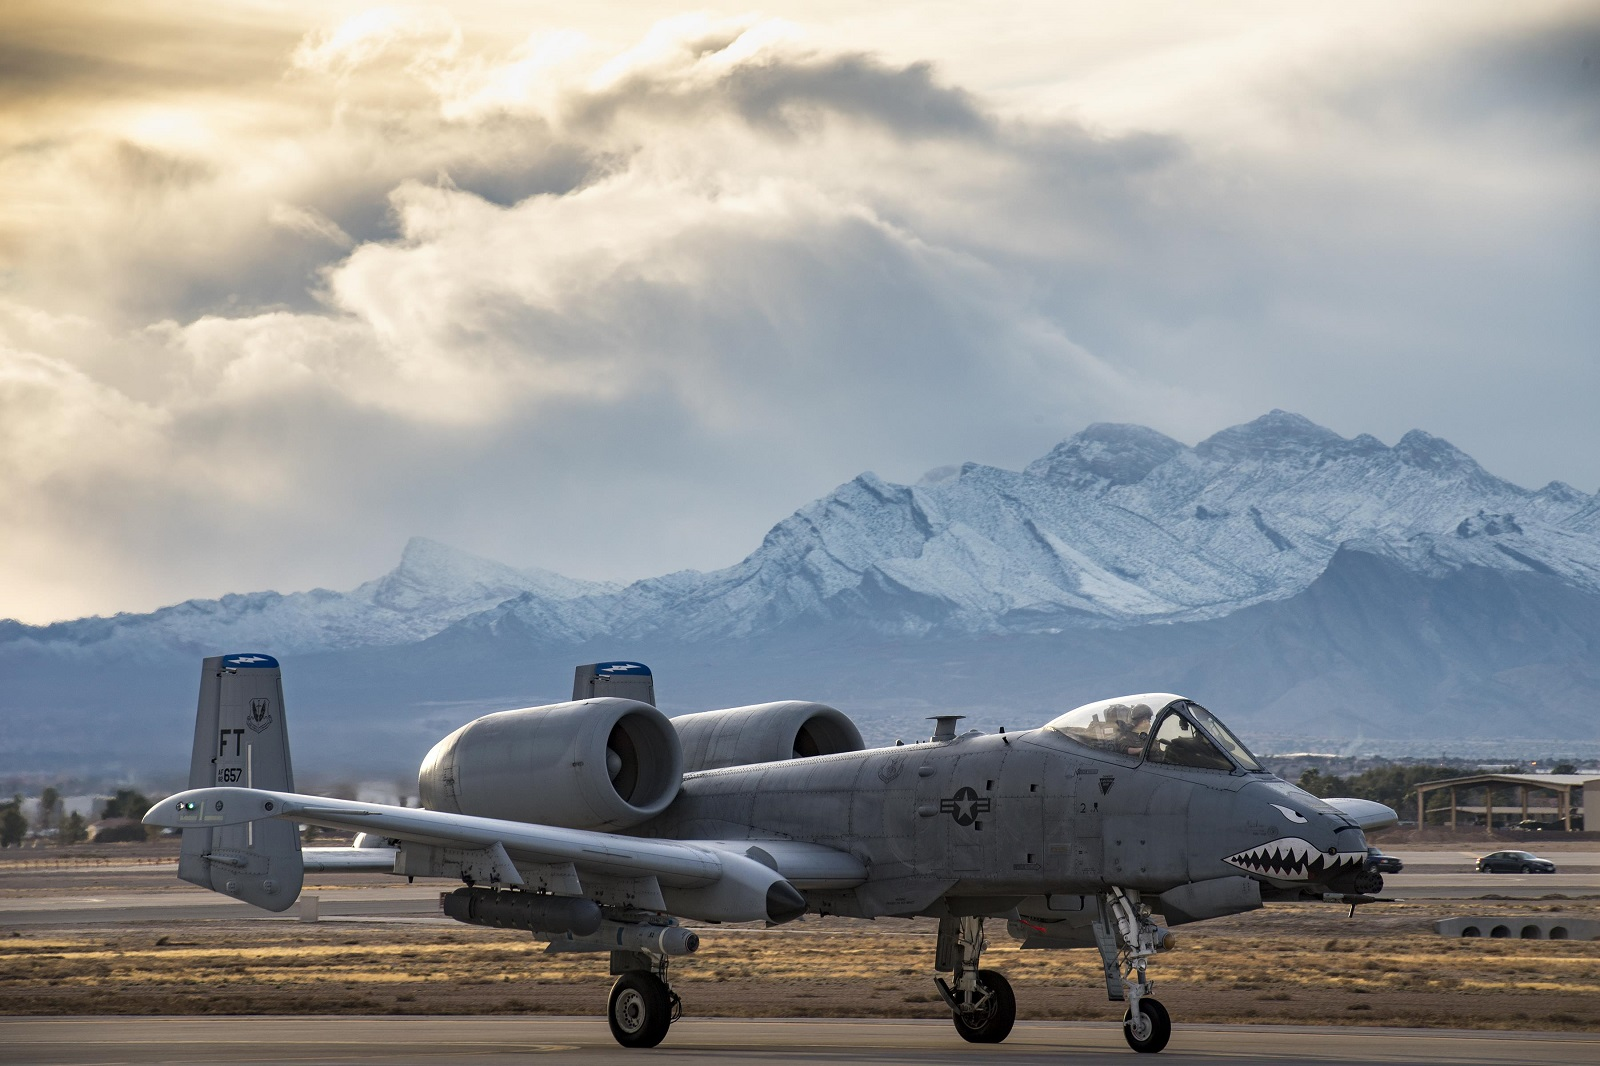 Two A-10s crash during training mission at Nellis Air Force Base